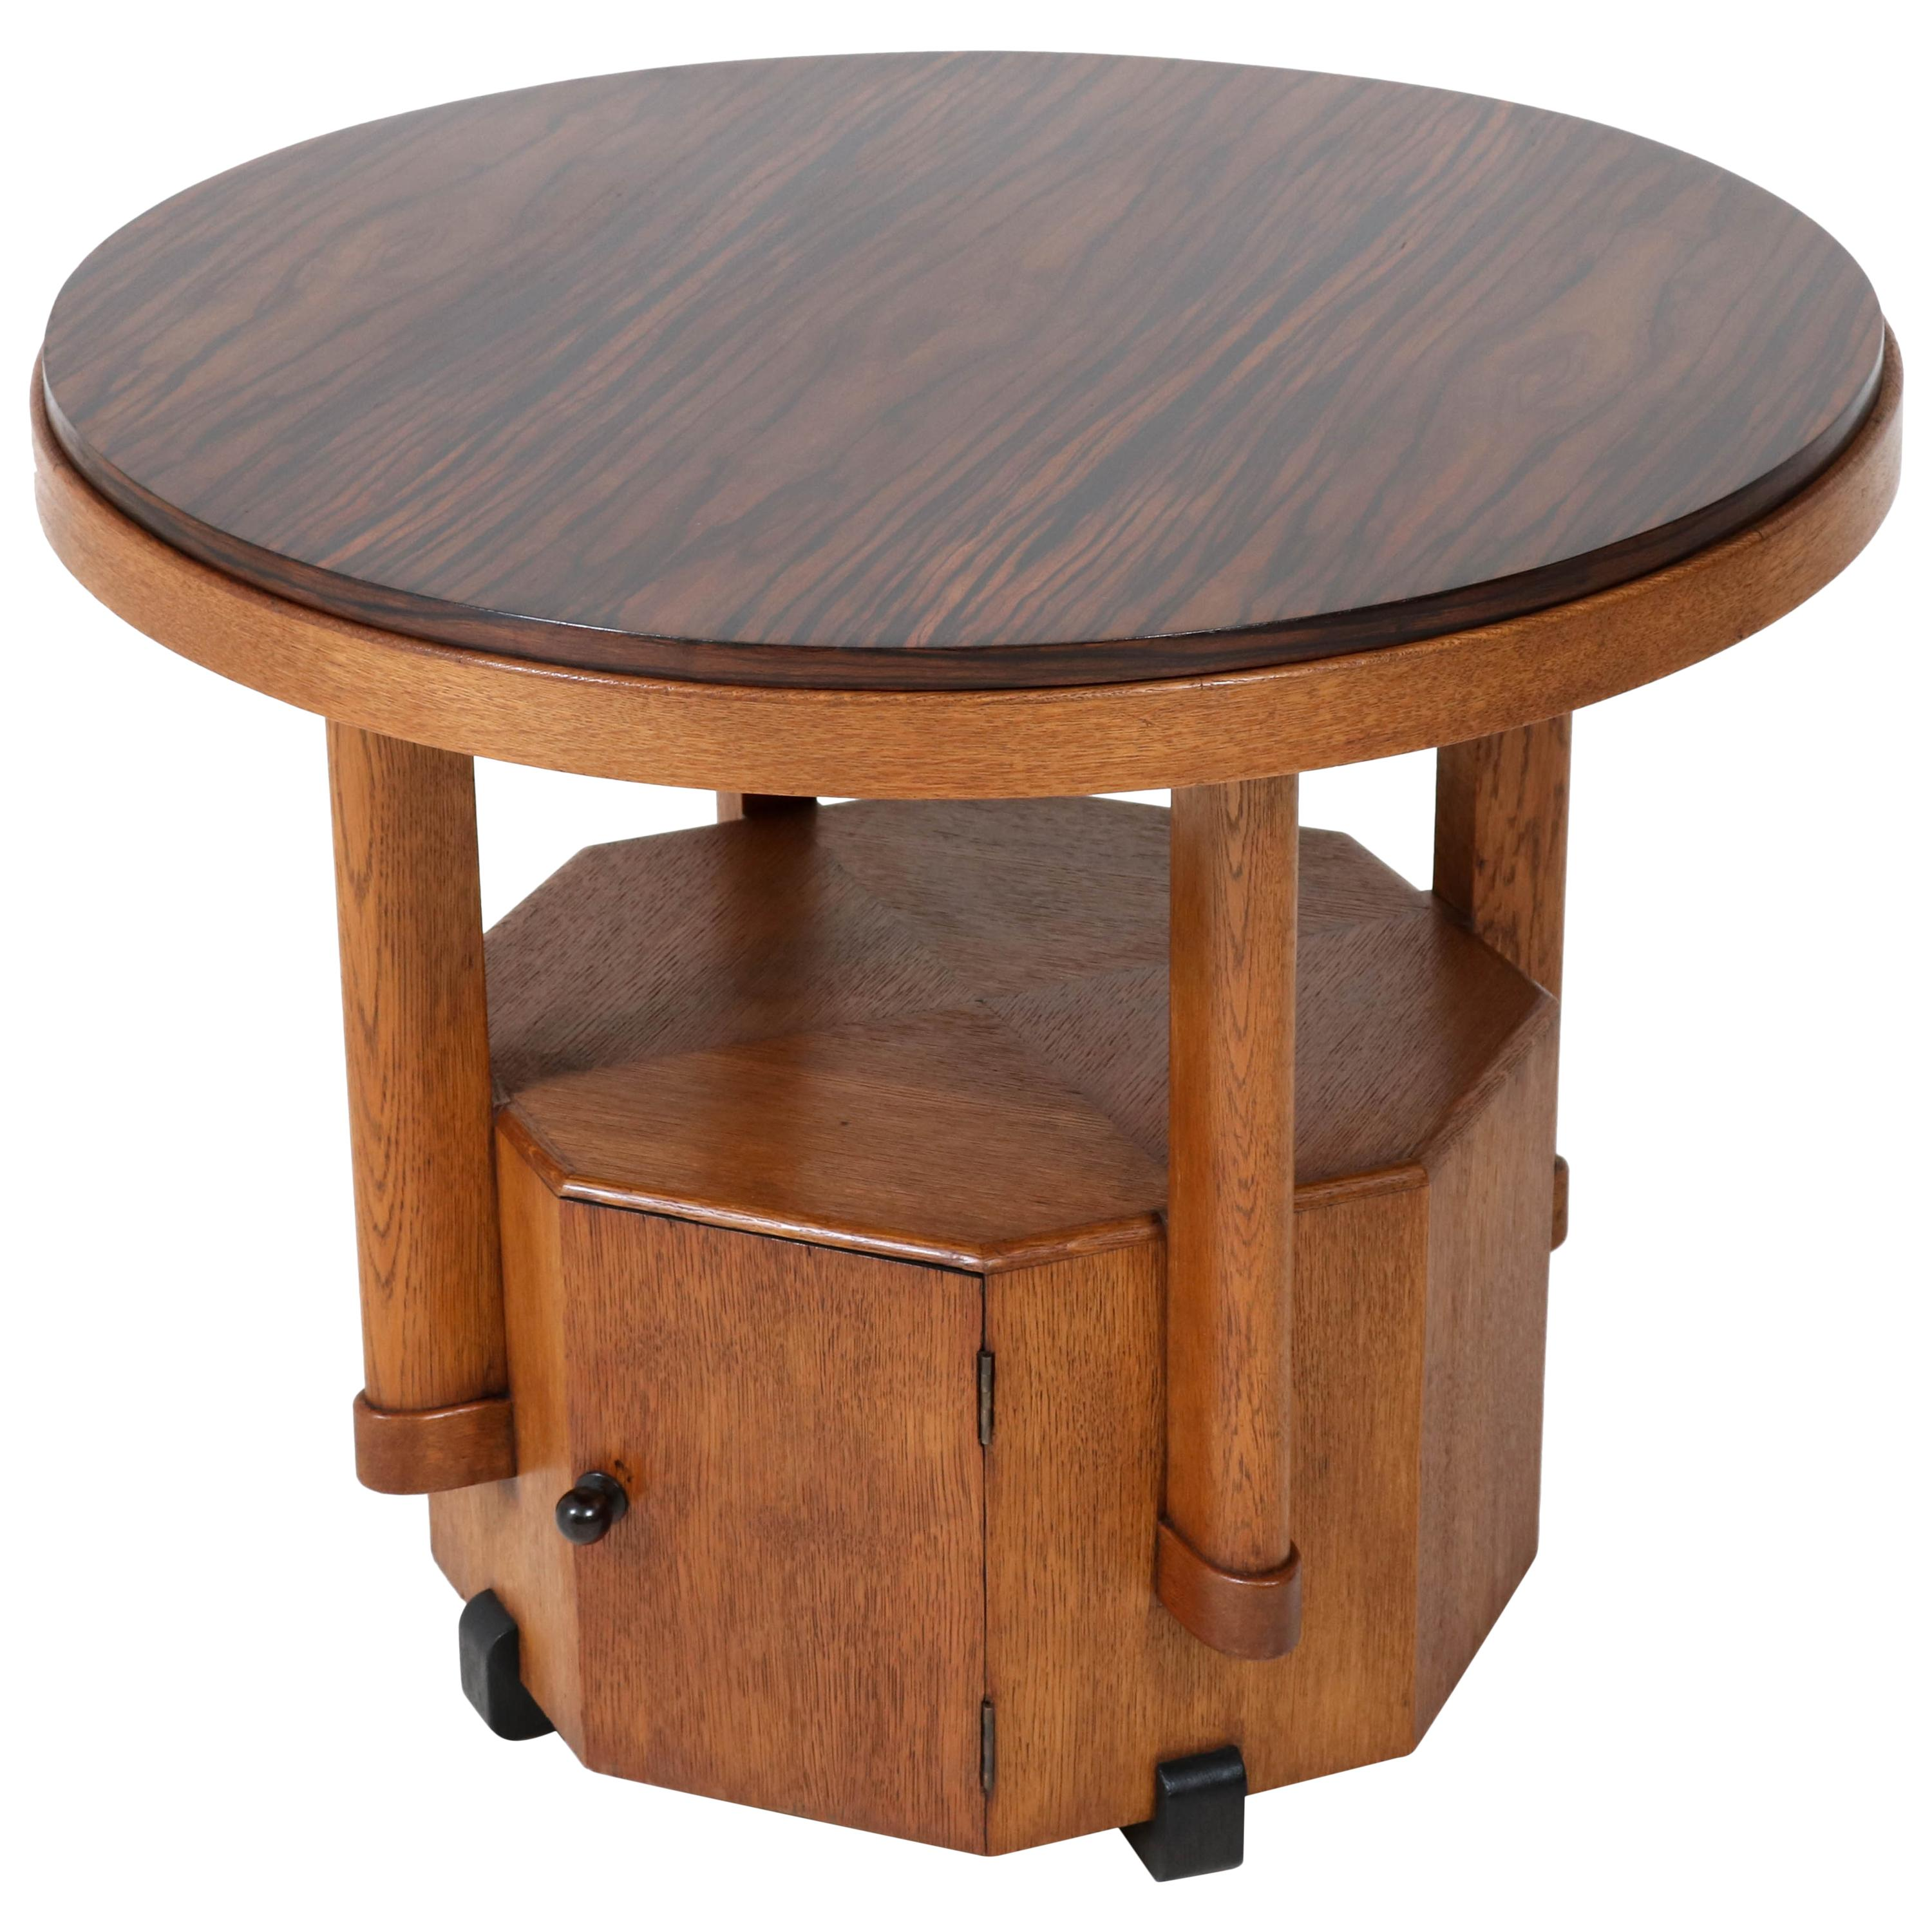 coffee and cocktail tables for master wood anton accent table pedestal dining tablecloth round modern blue lamp bamboo bedroom furniture brown glass grey mirrored bedside avani